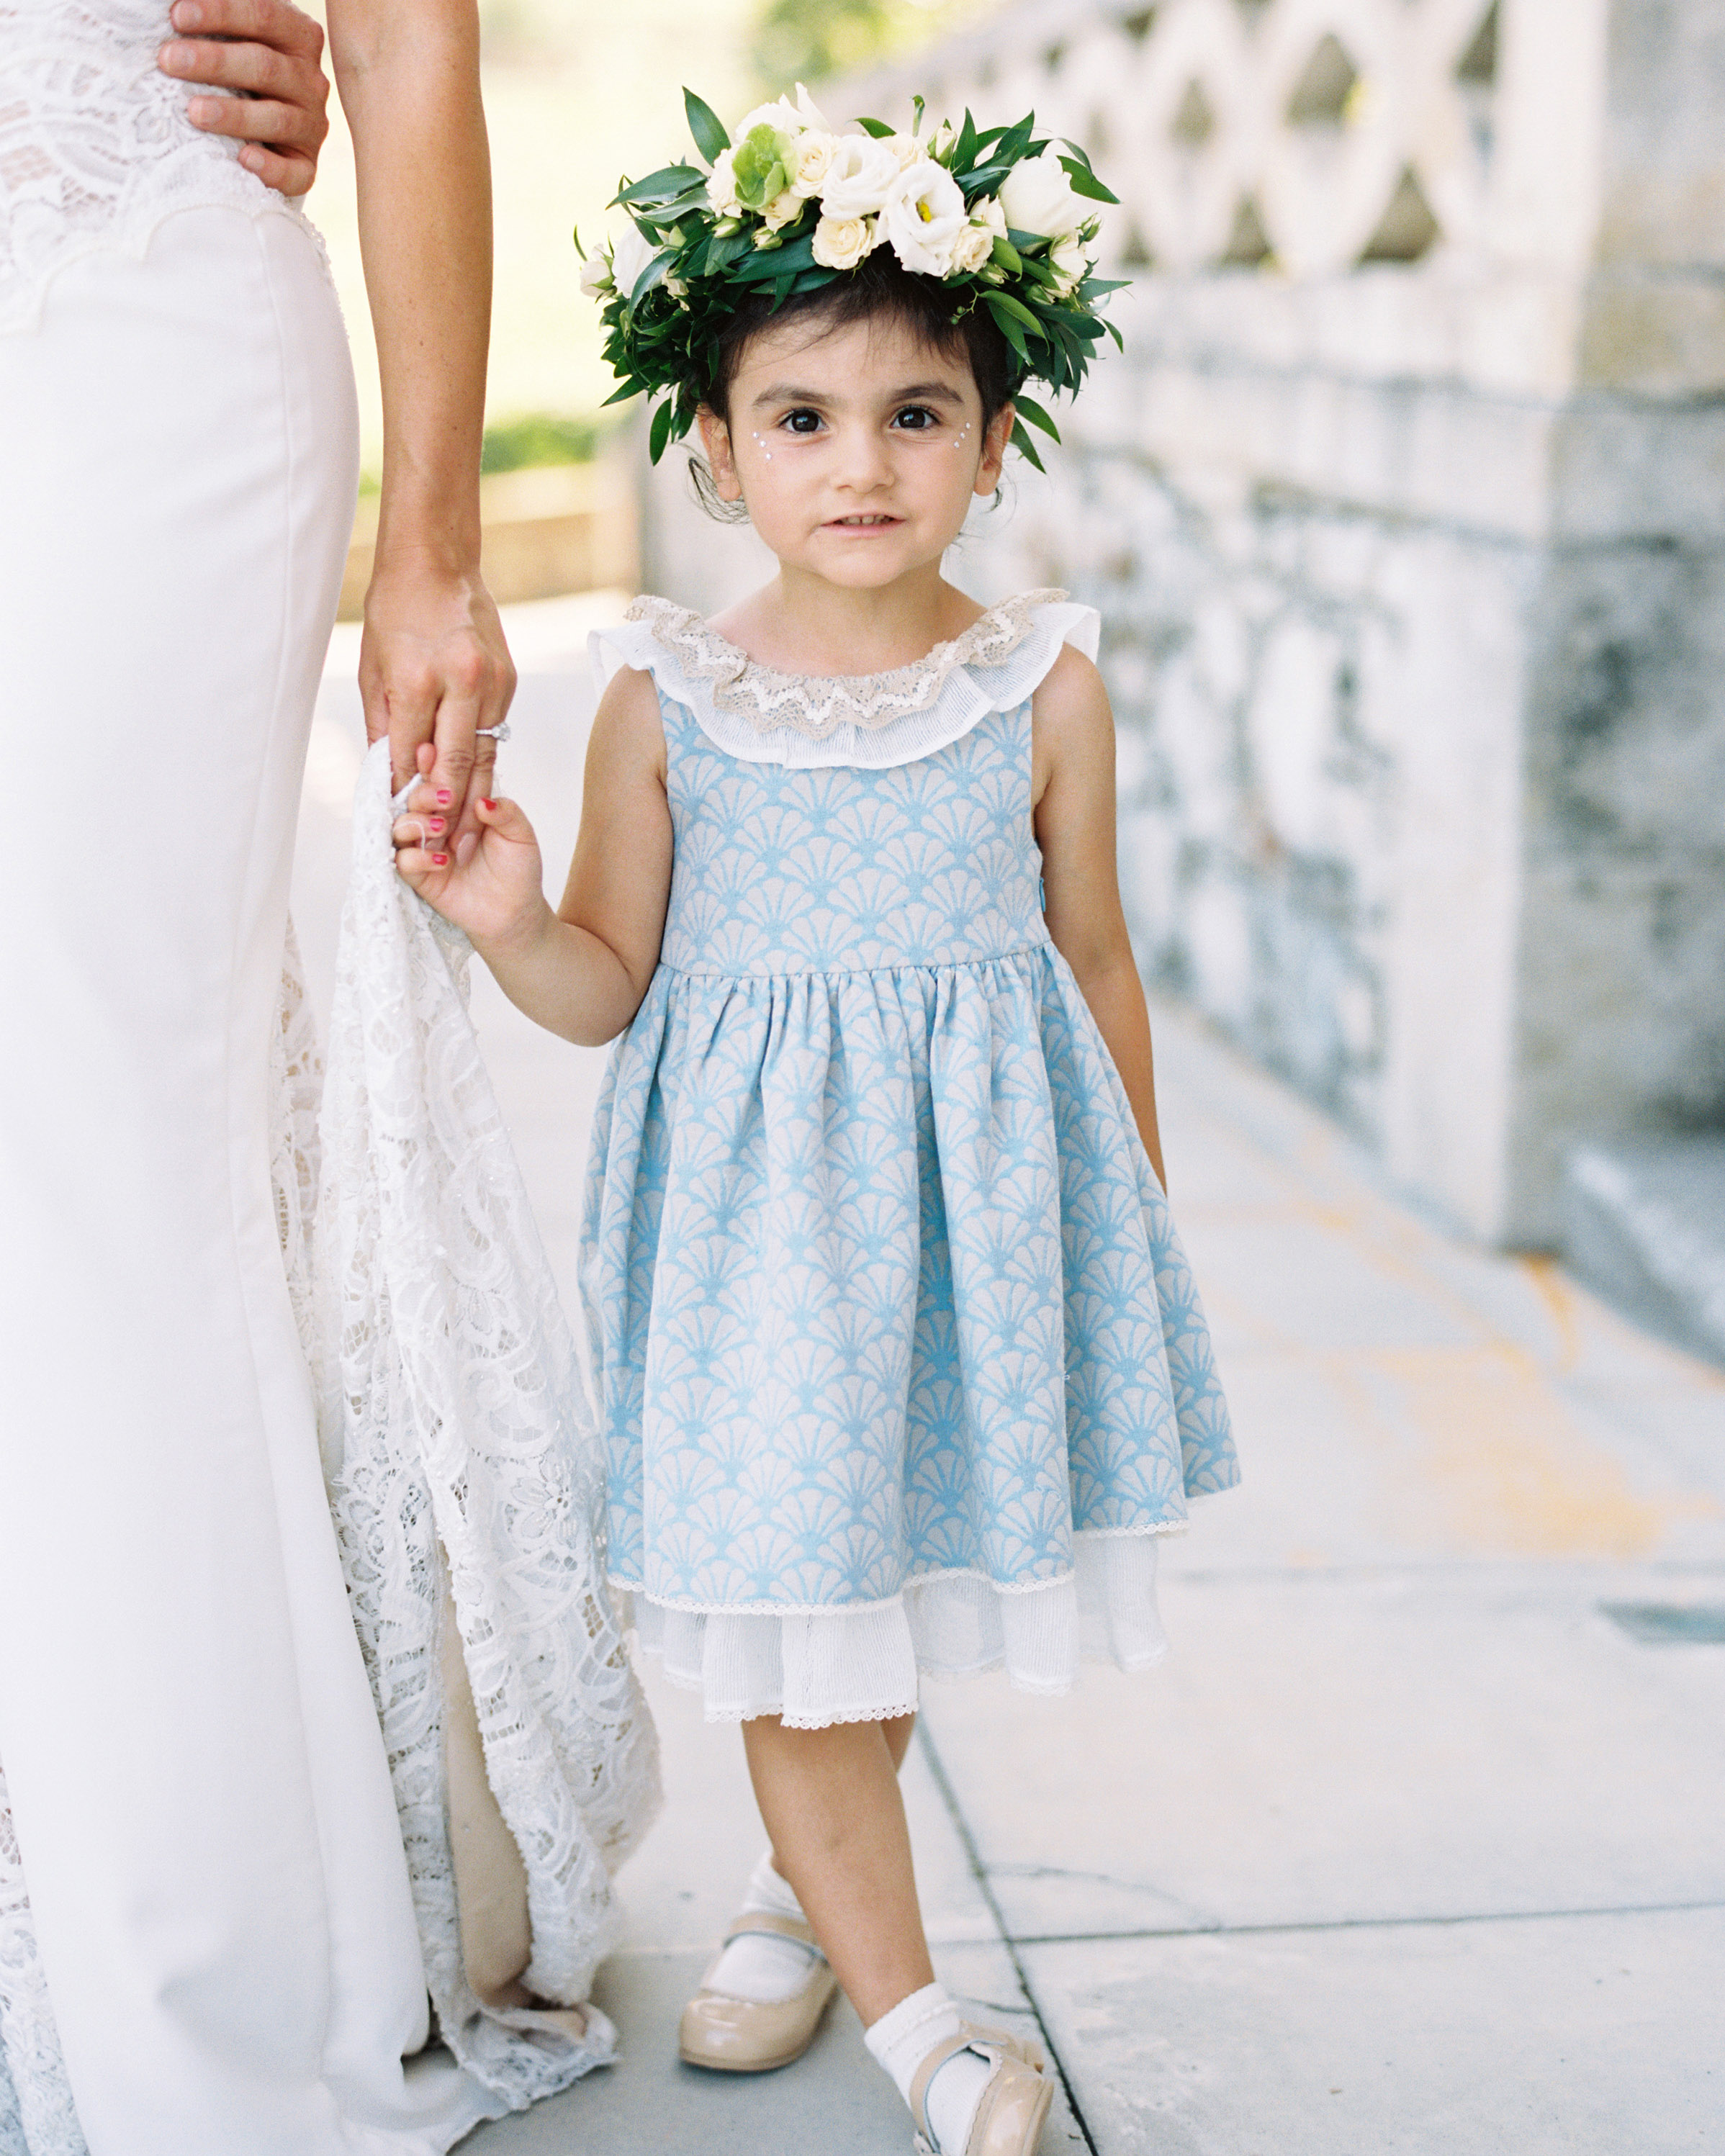 jeannette taylor wedding portugal flower girl